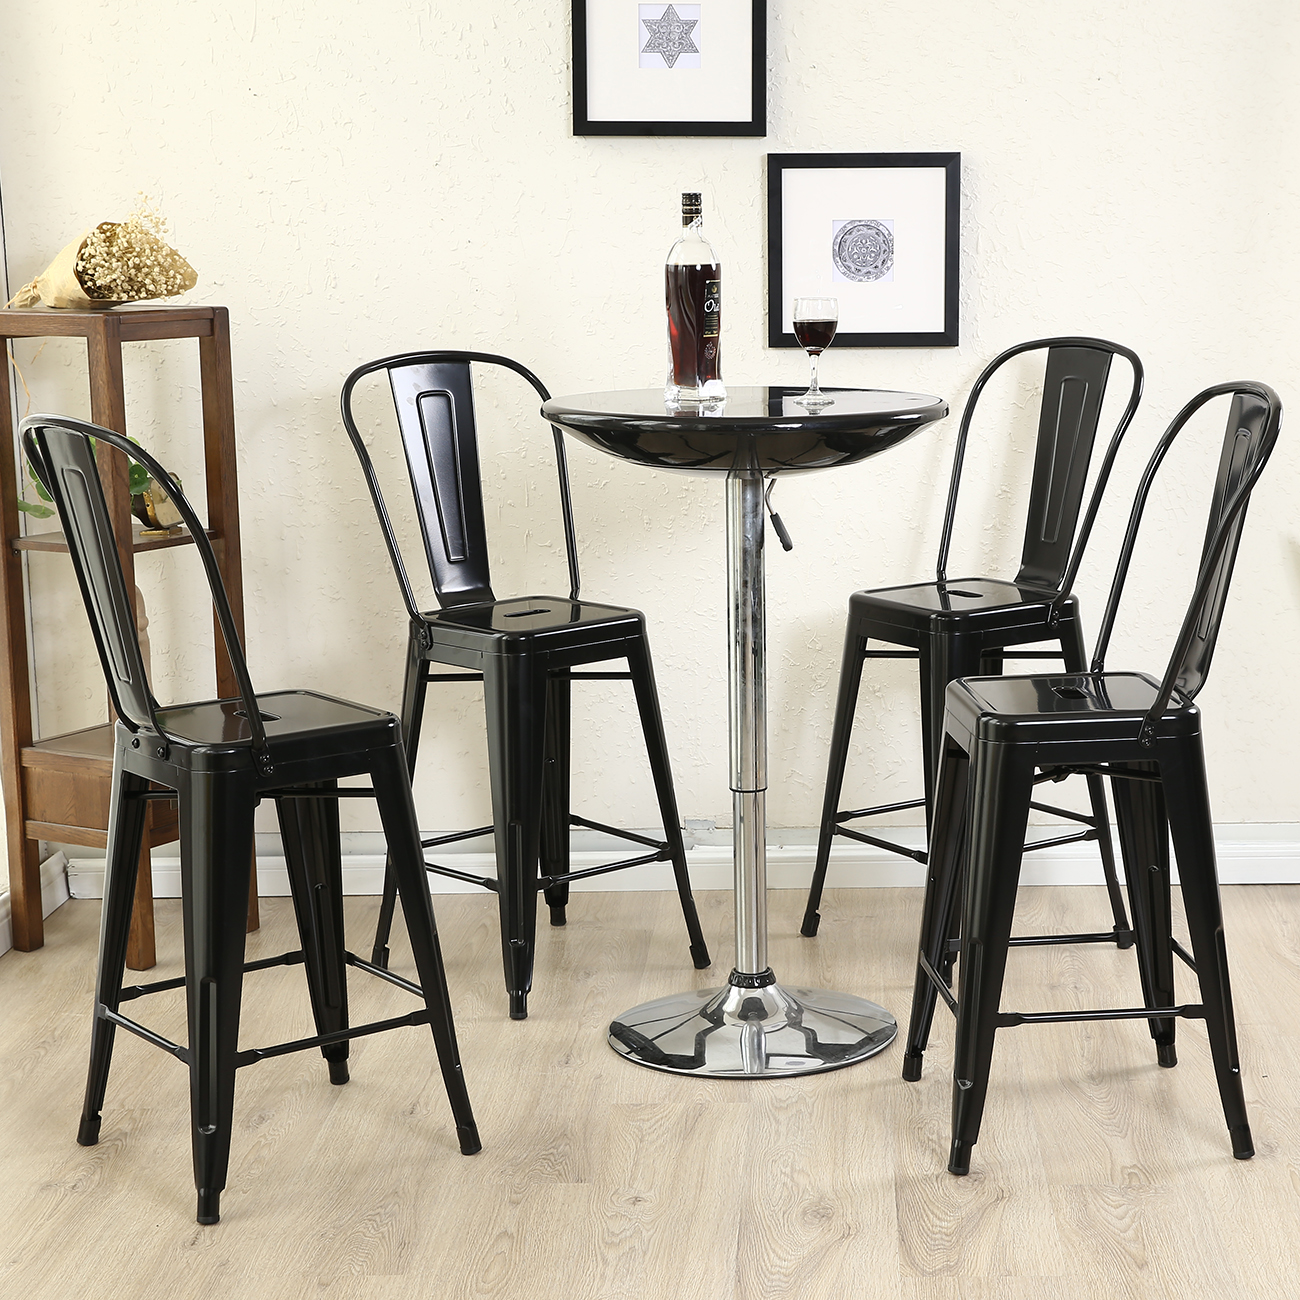 Deluxe Bar Stool Barstool Chair With High Back Rest Set